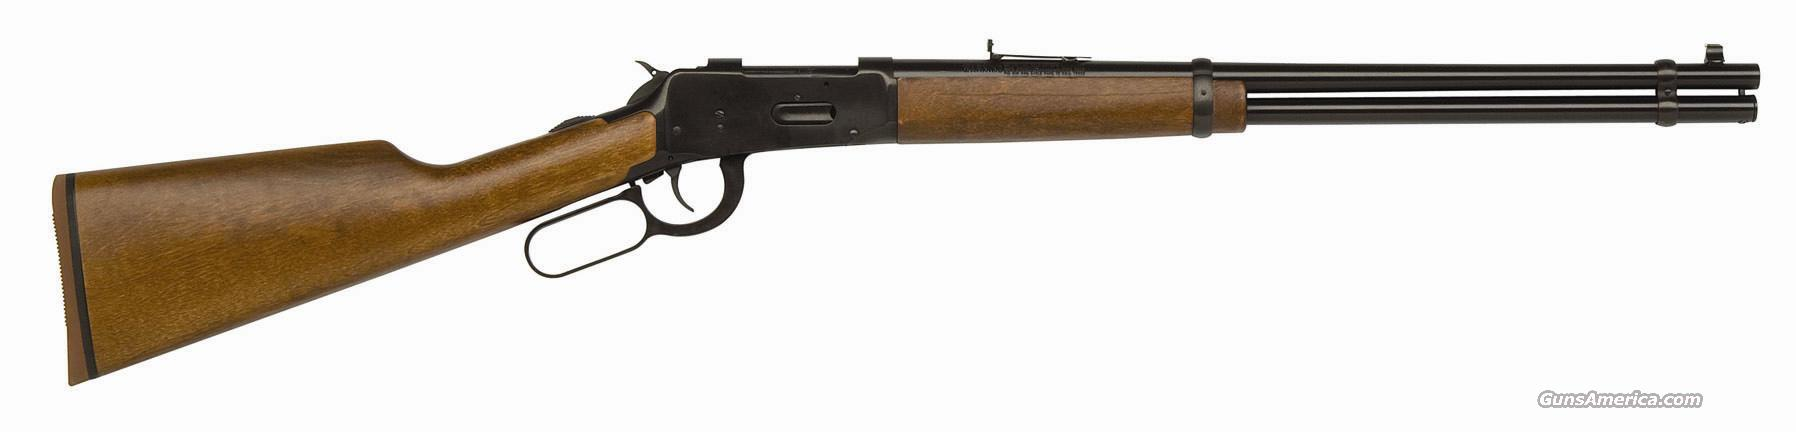 Mossberg 41010 464 Lever Action 30-30 Win. Model 41010  Guns > Rifles > Mossberg Rifles > Lever Action